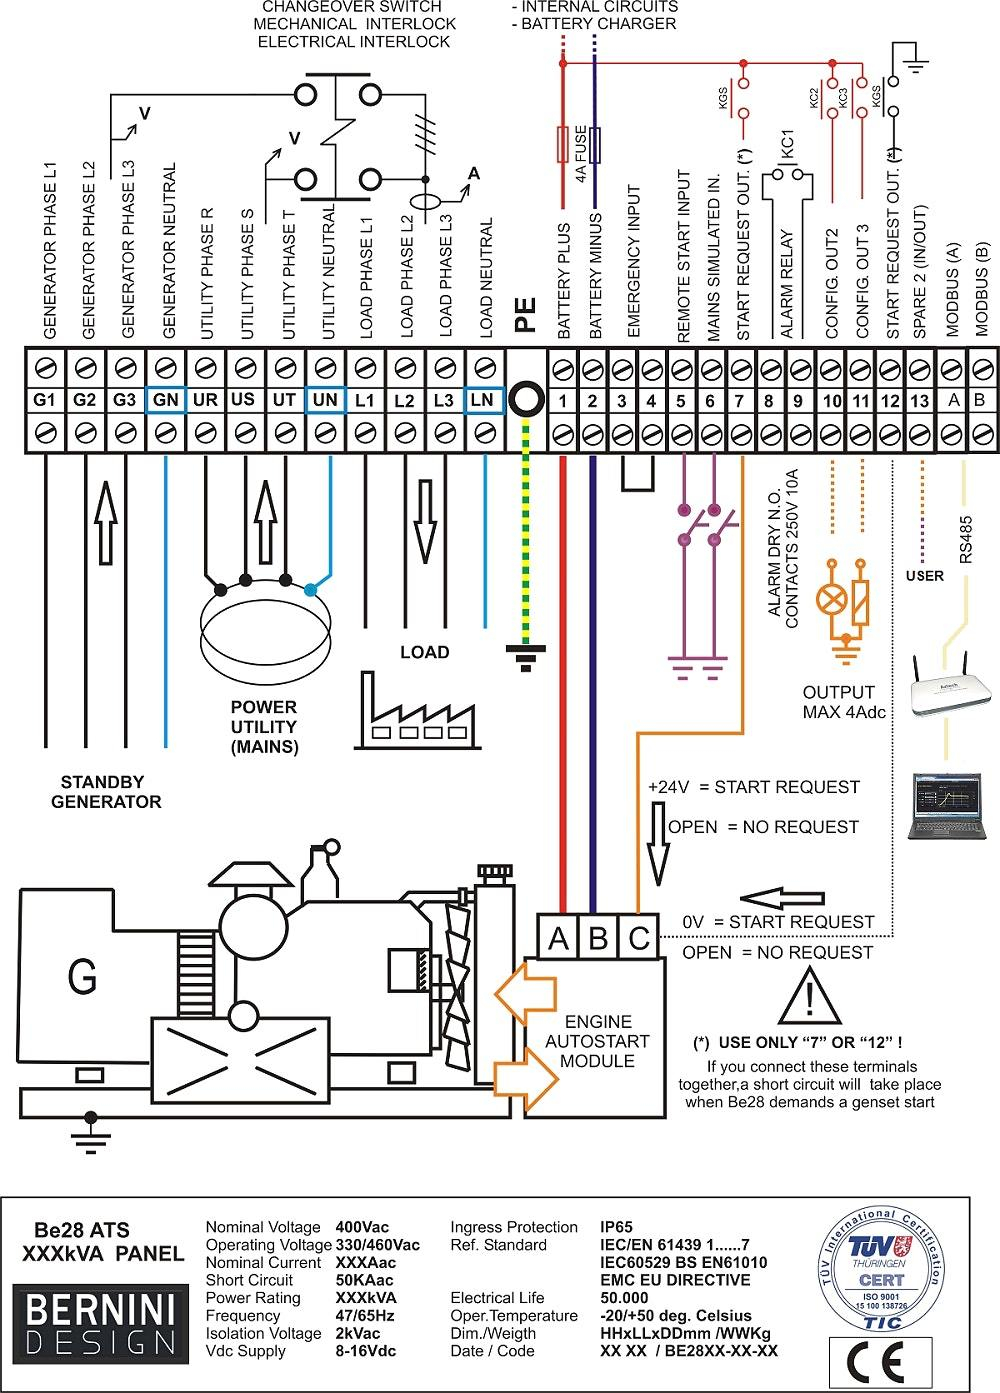 Onan Engine Wiring Diagram All - Circuit Diagram Symbols •